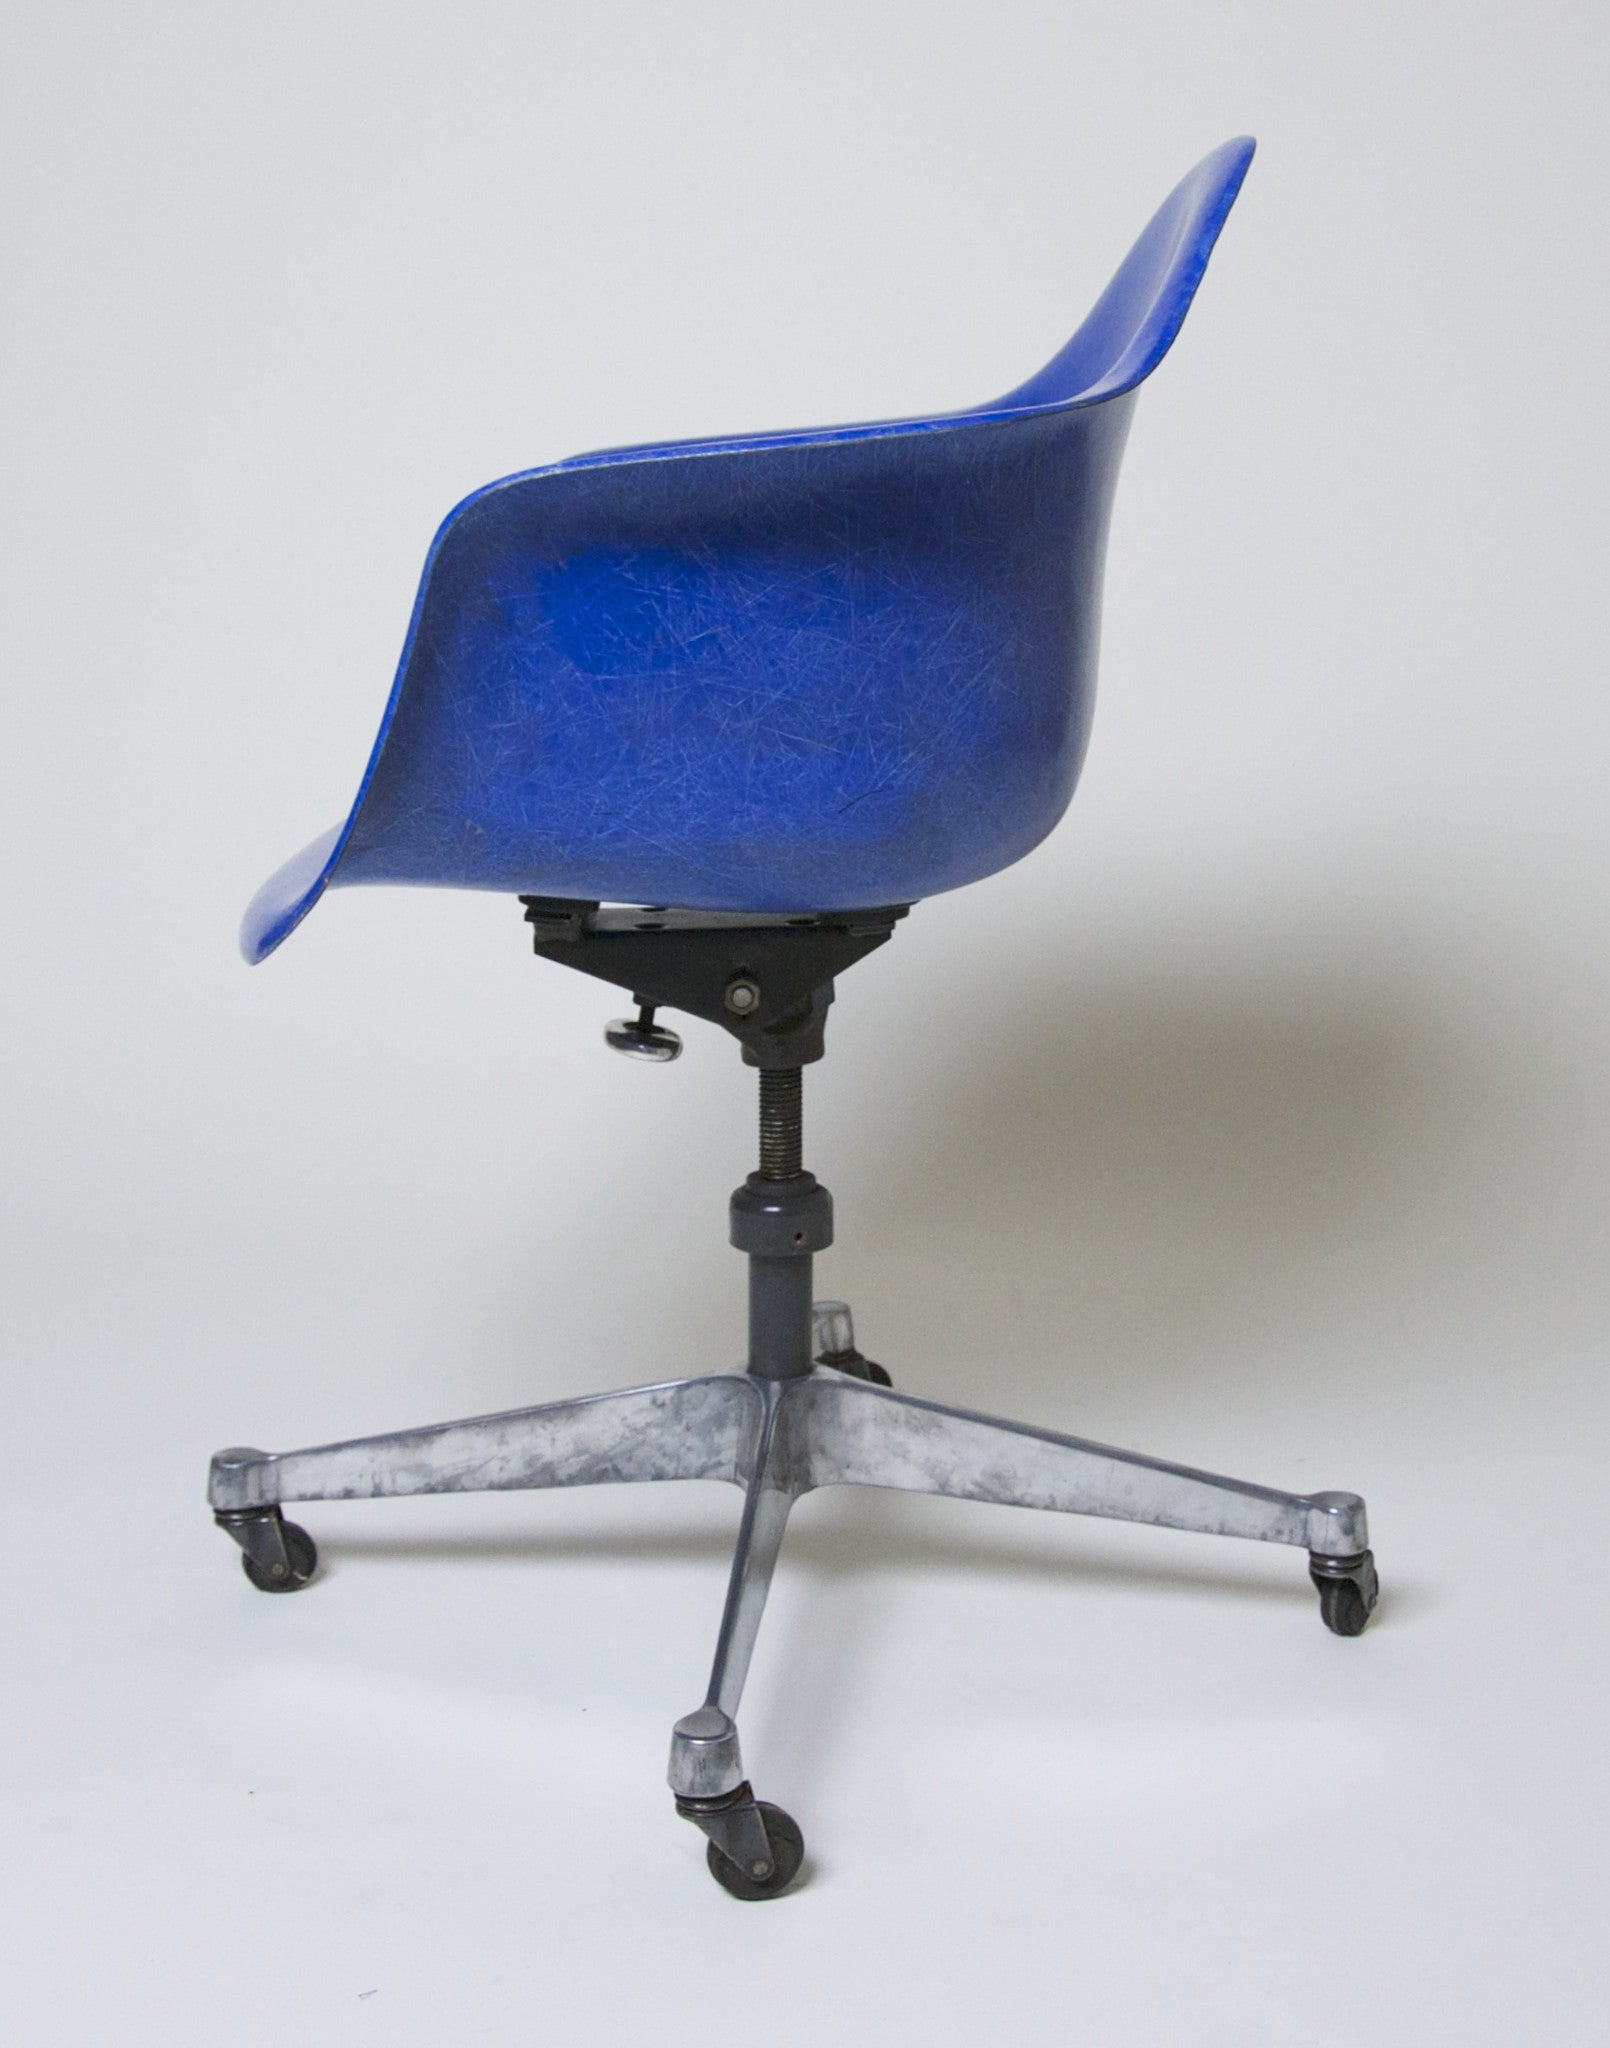 SOLD Rare 1969 Original Eames DAT Herman Miller Fiberglass Shell Chair In Bright Blue